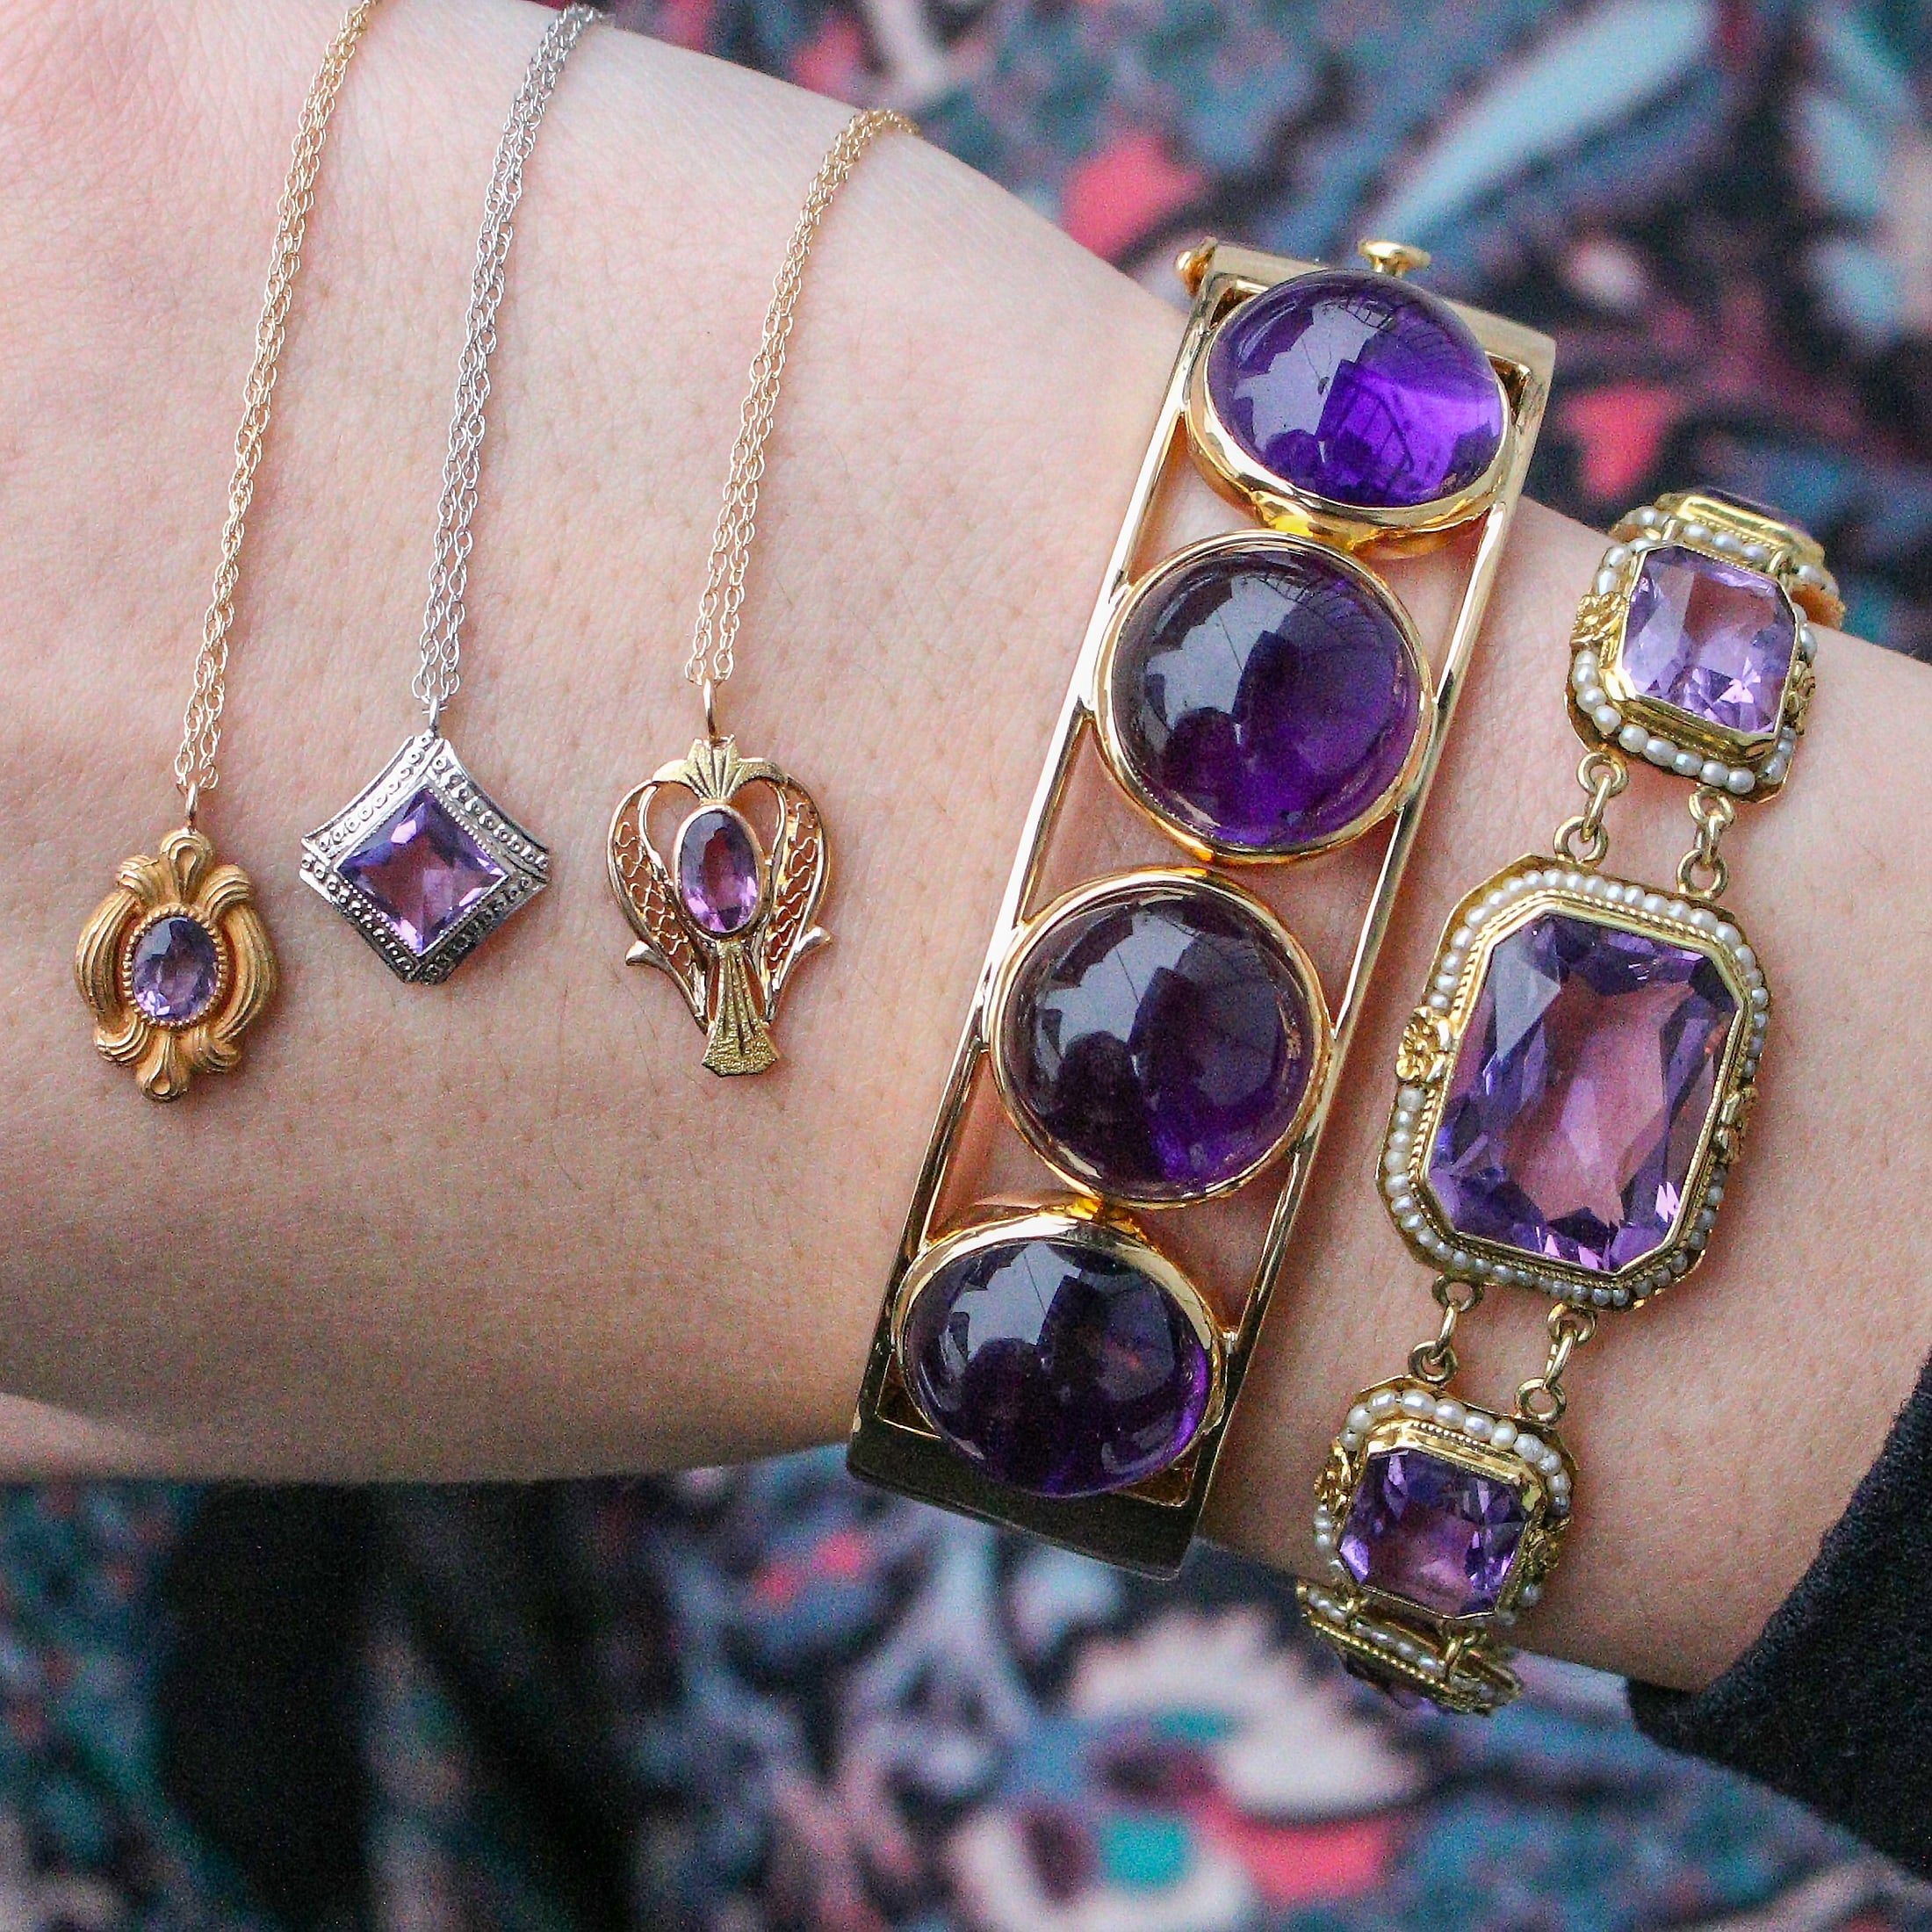 Amethyst bracelets and pendants